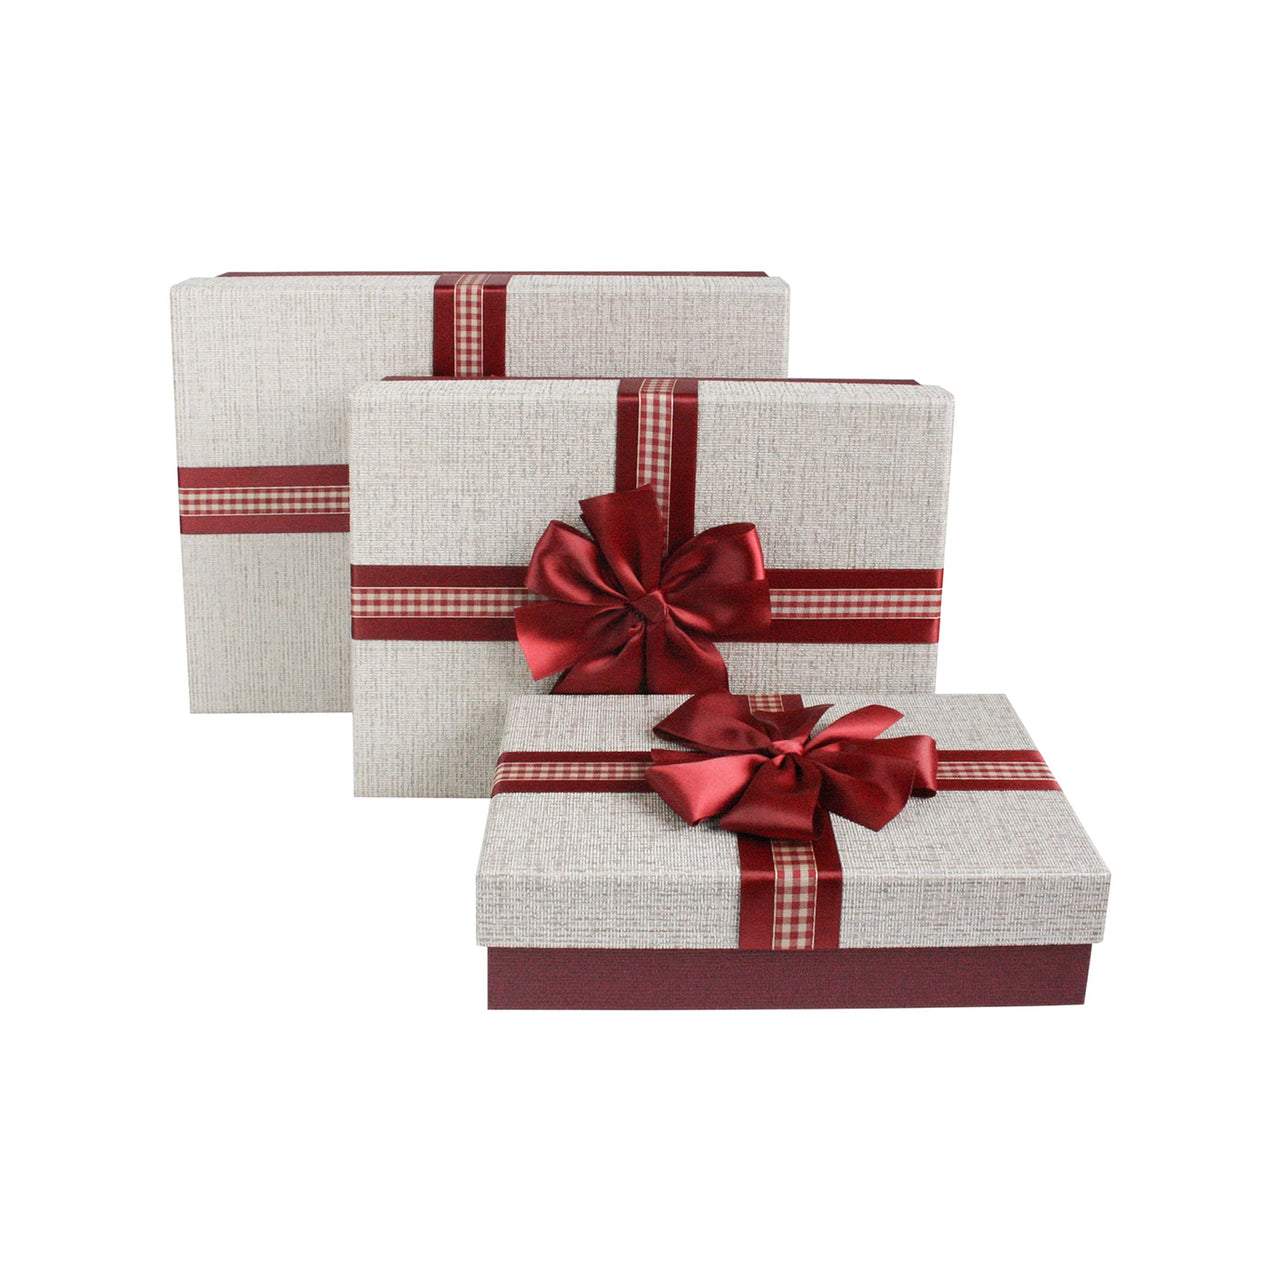 Brown Maroon Bow Gift Box - Set Of 3